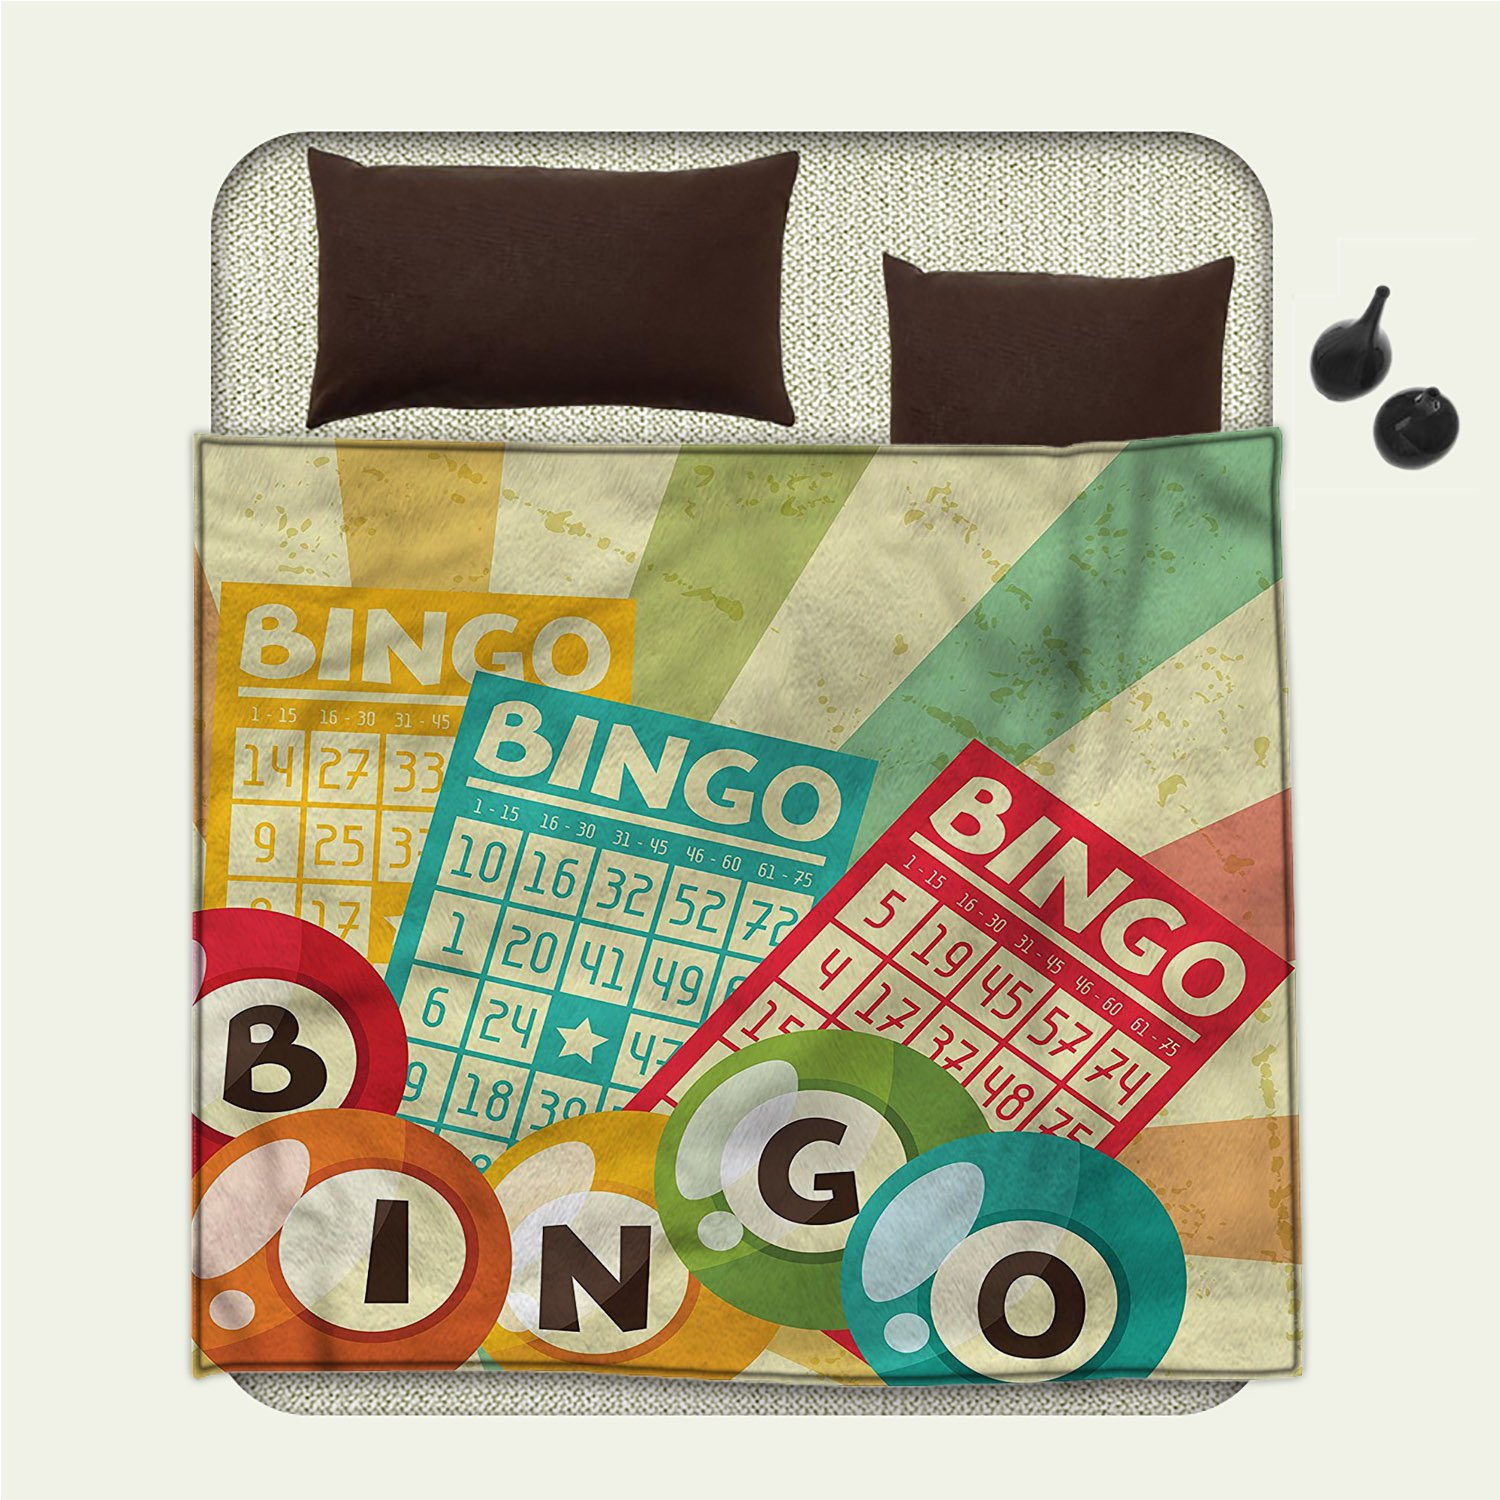 smallbeefly Vintage Flannel blanket Bingo Game with Ball and Cards Pop Art Stylized Lottery Hobby Celebration Themeblanket queen size Multicolor by smallbeefly